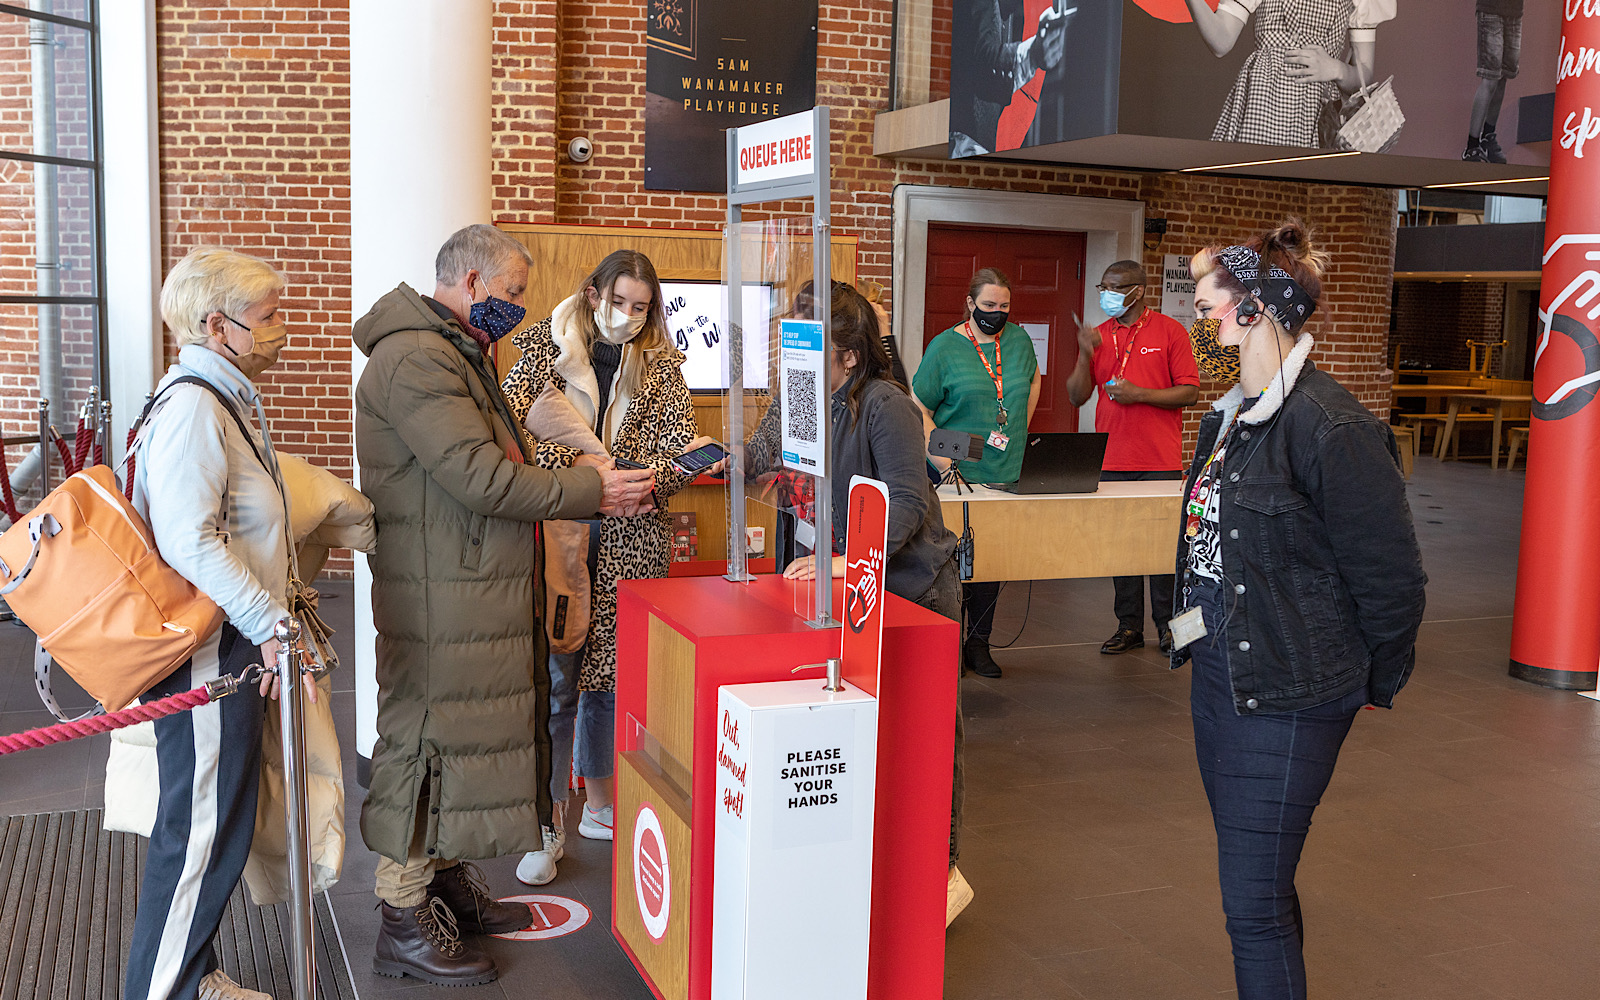 An audience member shows a ticket on their phone to a member of staff who stands behind a perspex stand